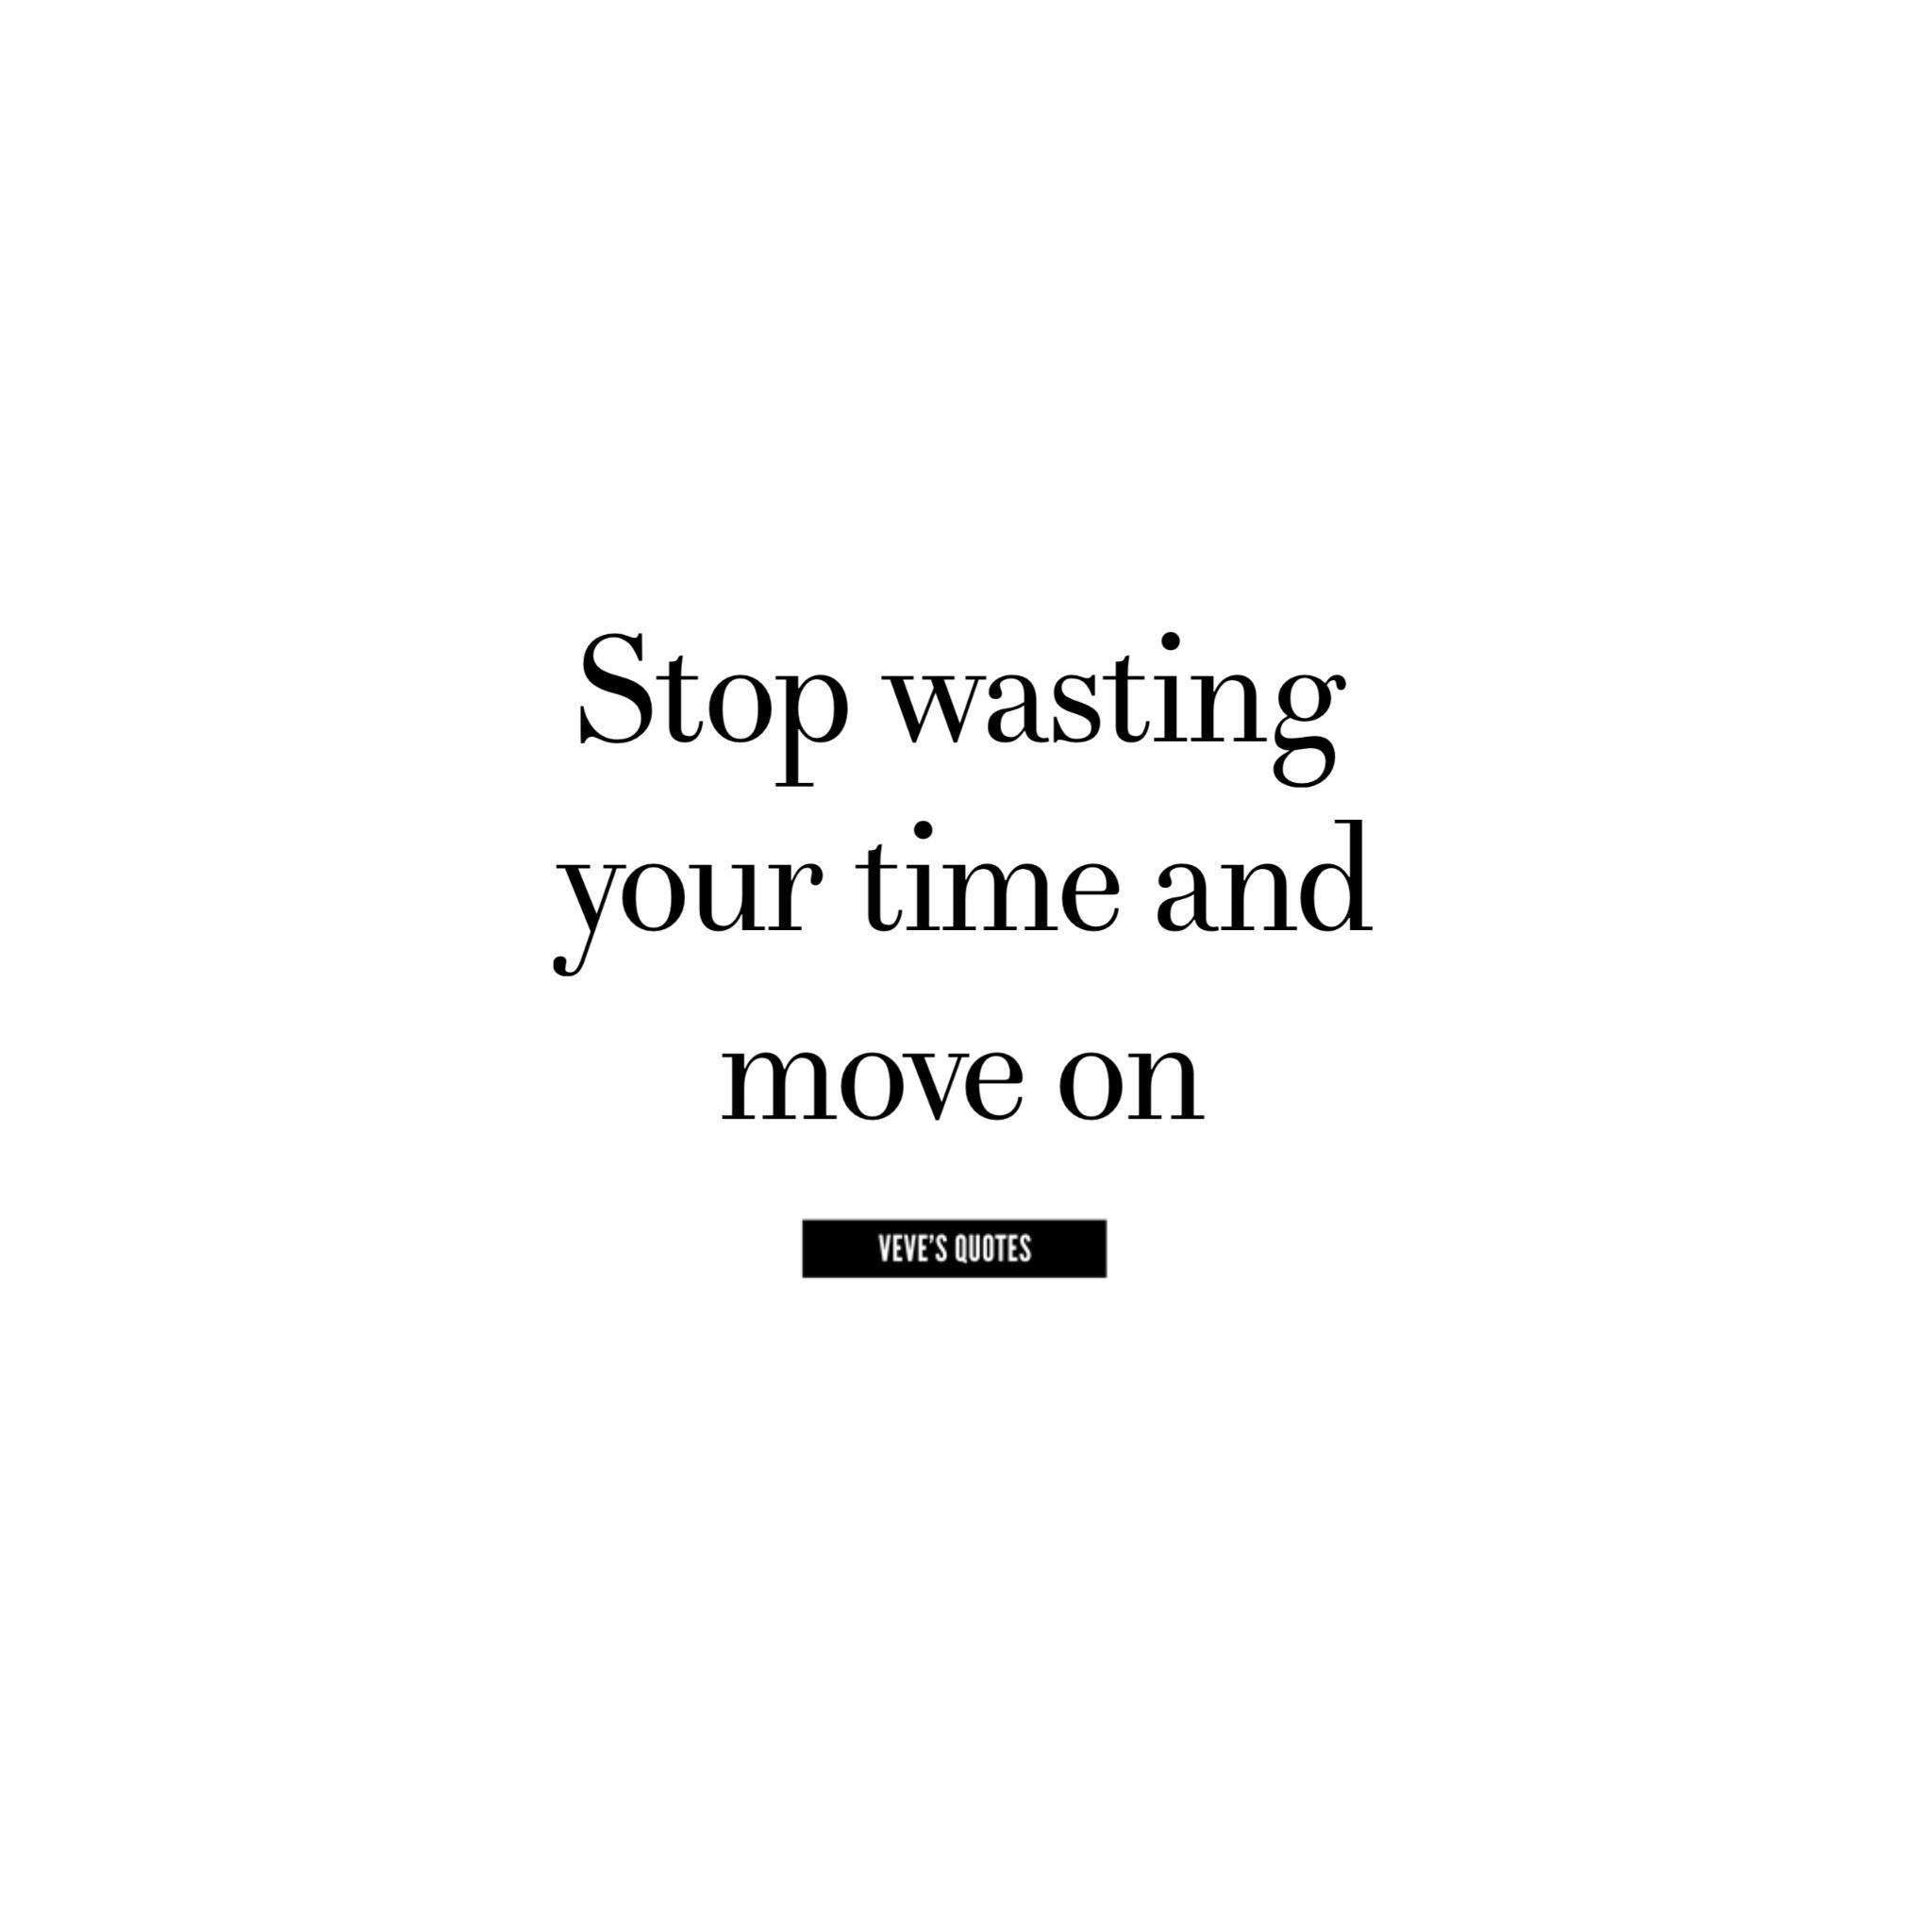 Time To Move On Quotes Stop Wasting Your Time And Move On #quotes  Quotes  Pinterest